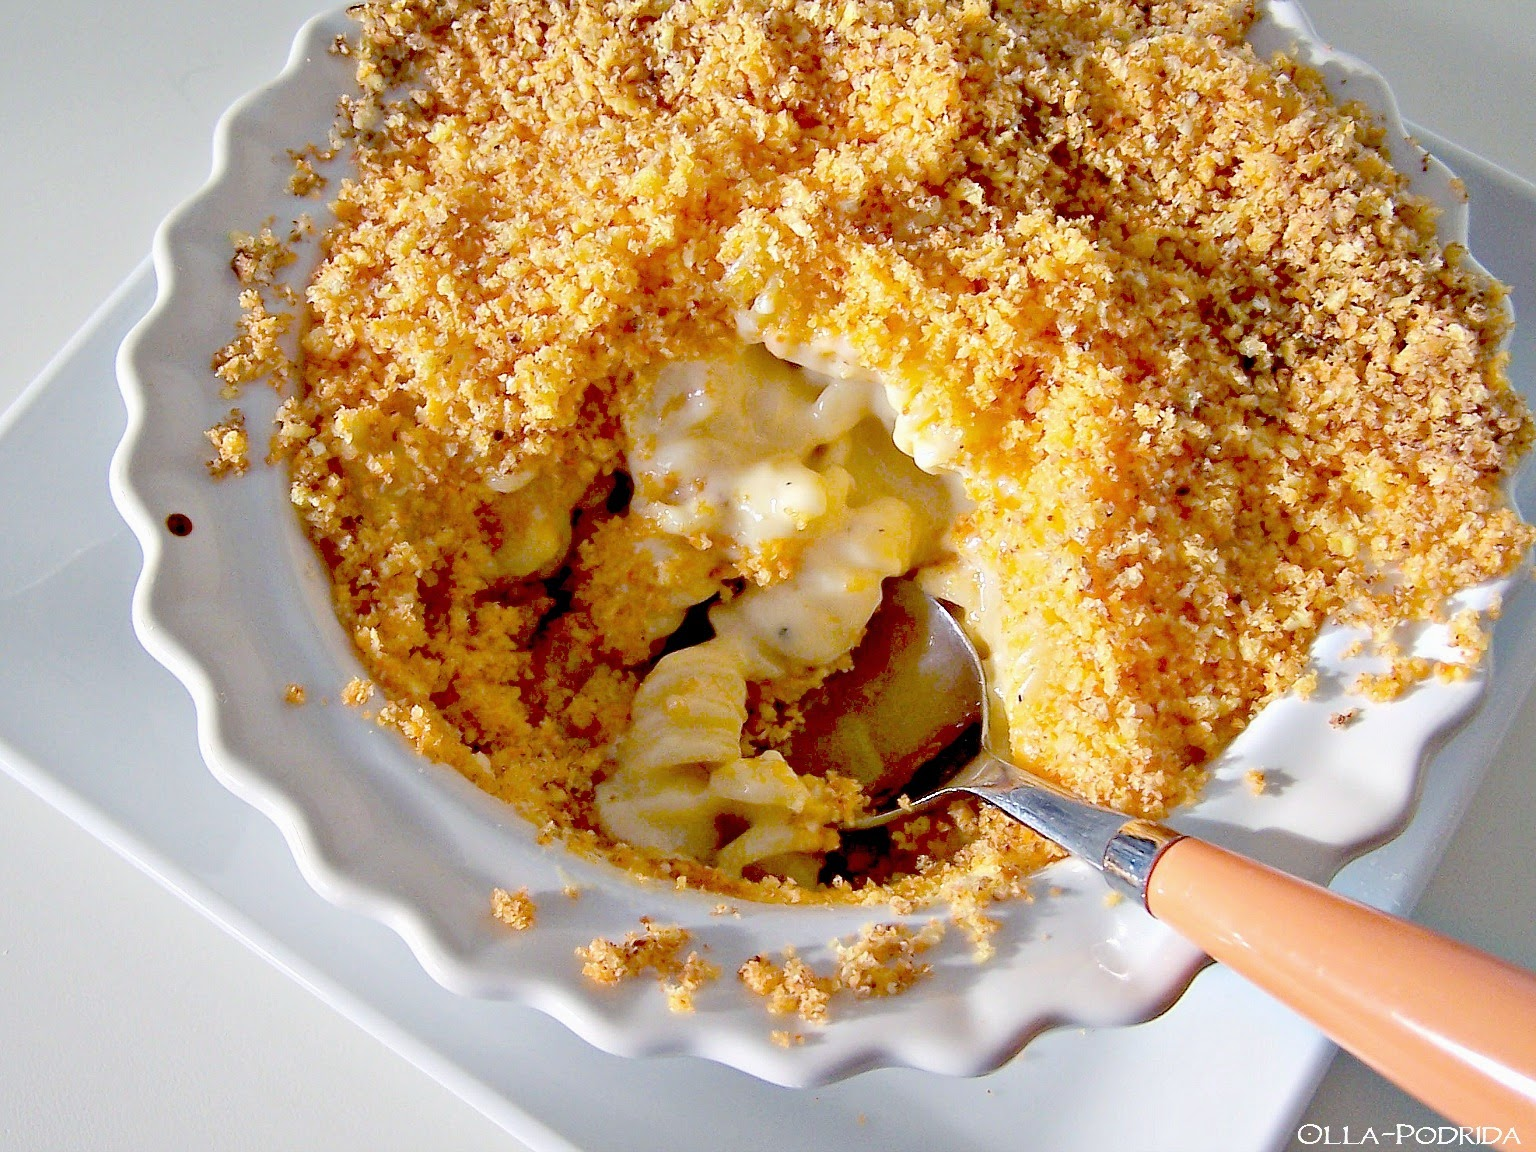 Cheetos-Crusted Mac And Cheese | Hot Cheetos Recipes For A Spiced Up Summer | Homemade Recipes